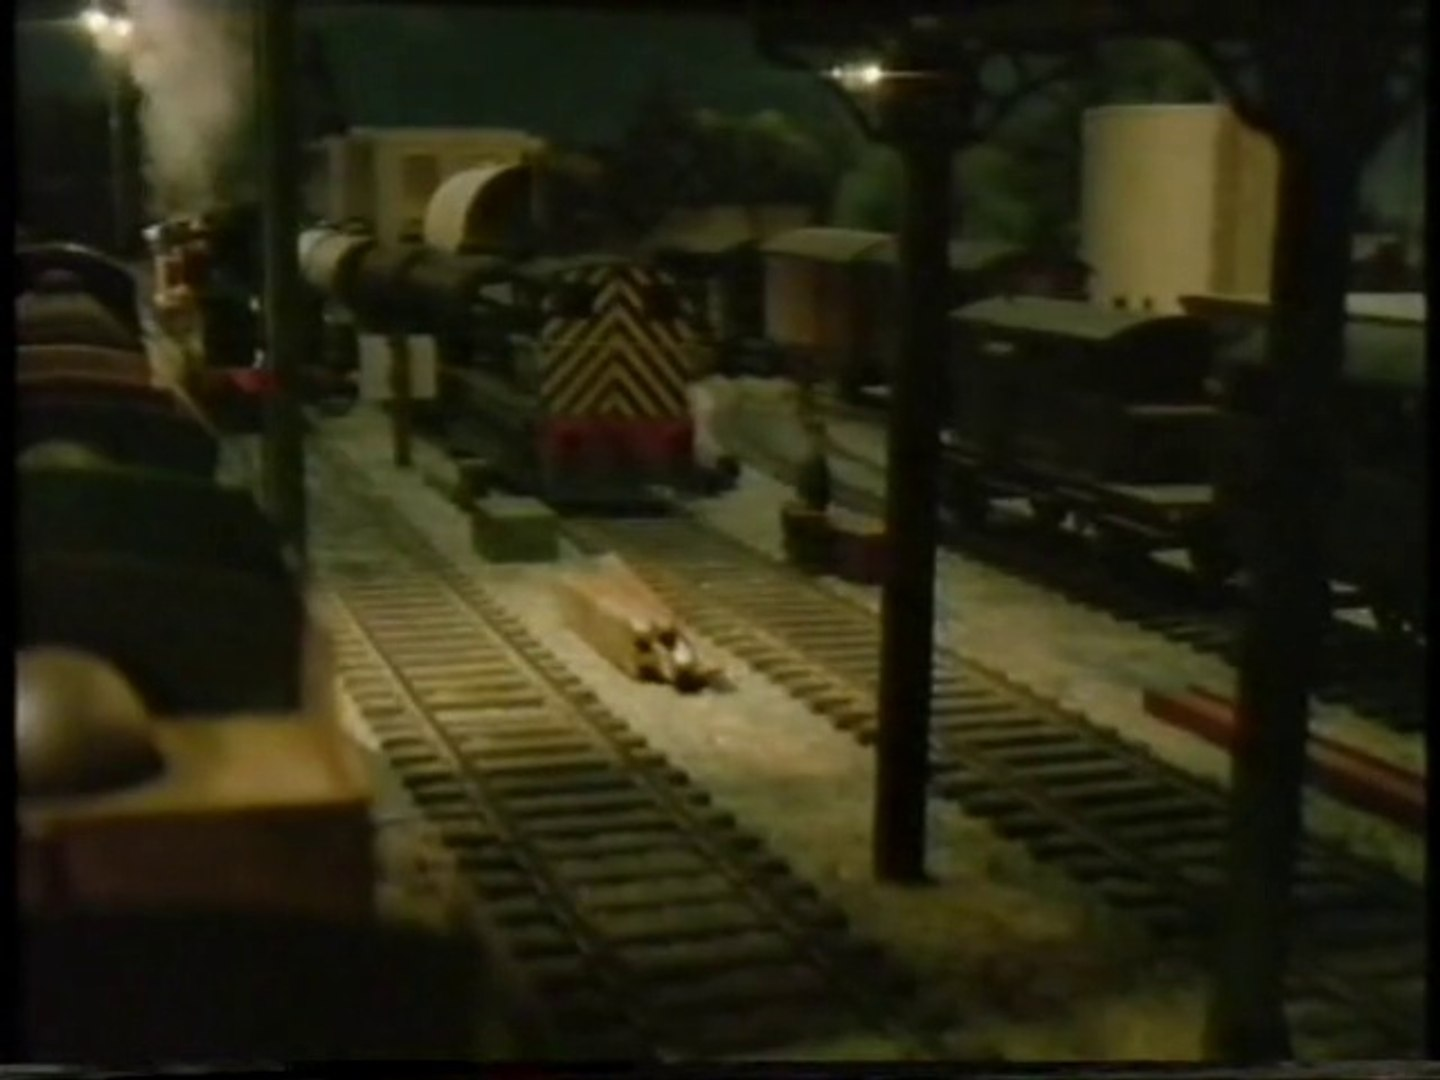 Thomas the Tank Engine & Friends - Escape and Other Stories (UK) - (1992)